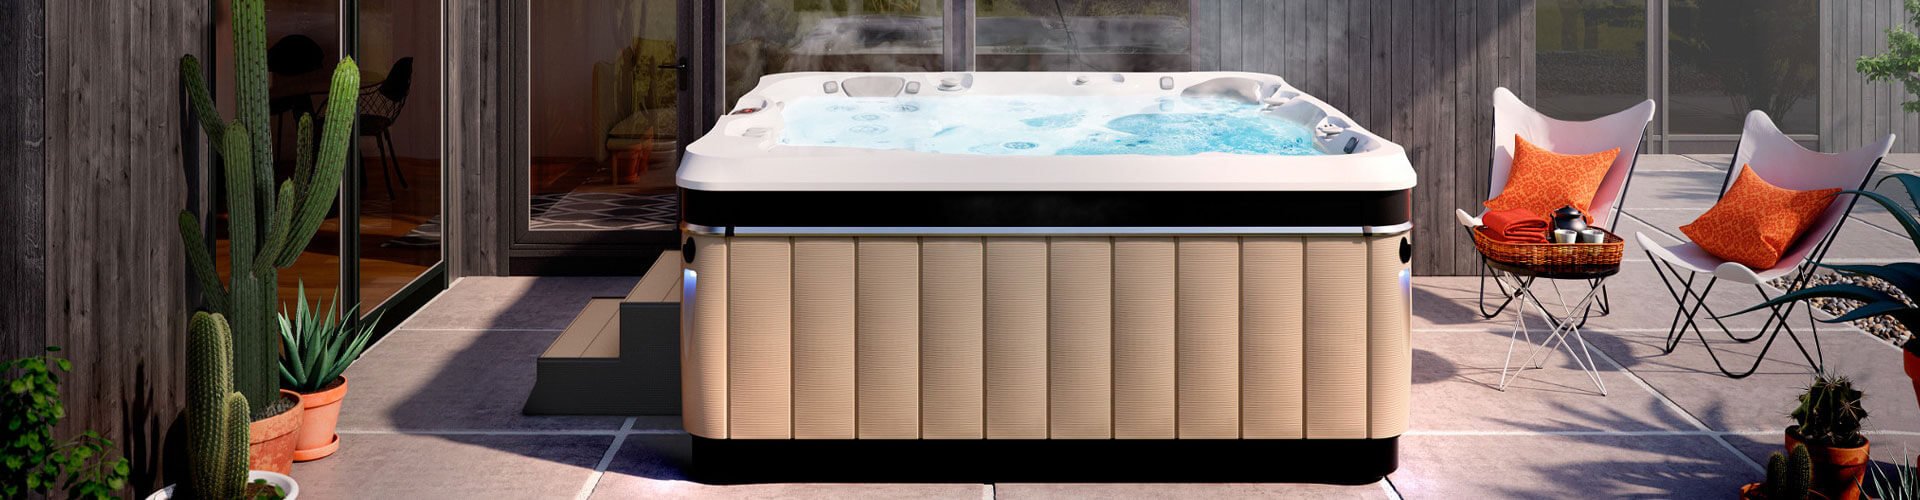 3 Benefits from Hot Tub Massage Therapy, Hot Tubs Village of Oak Creek